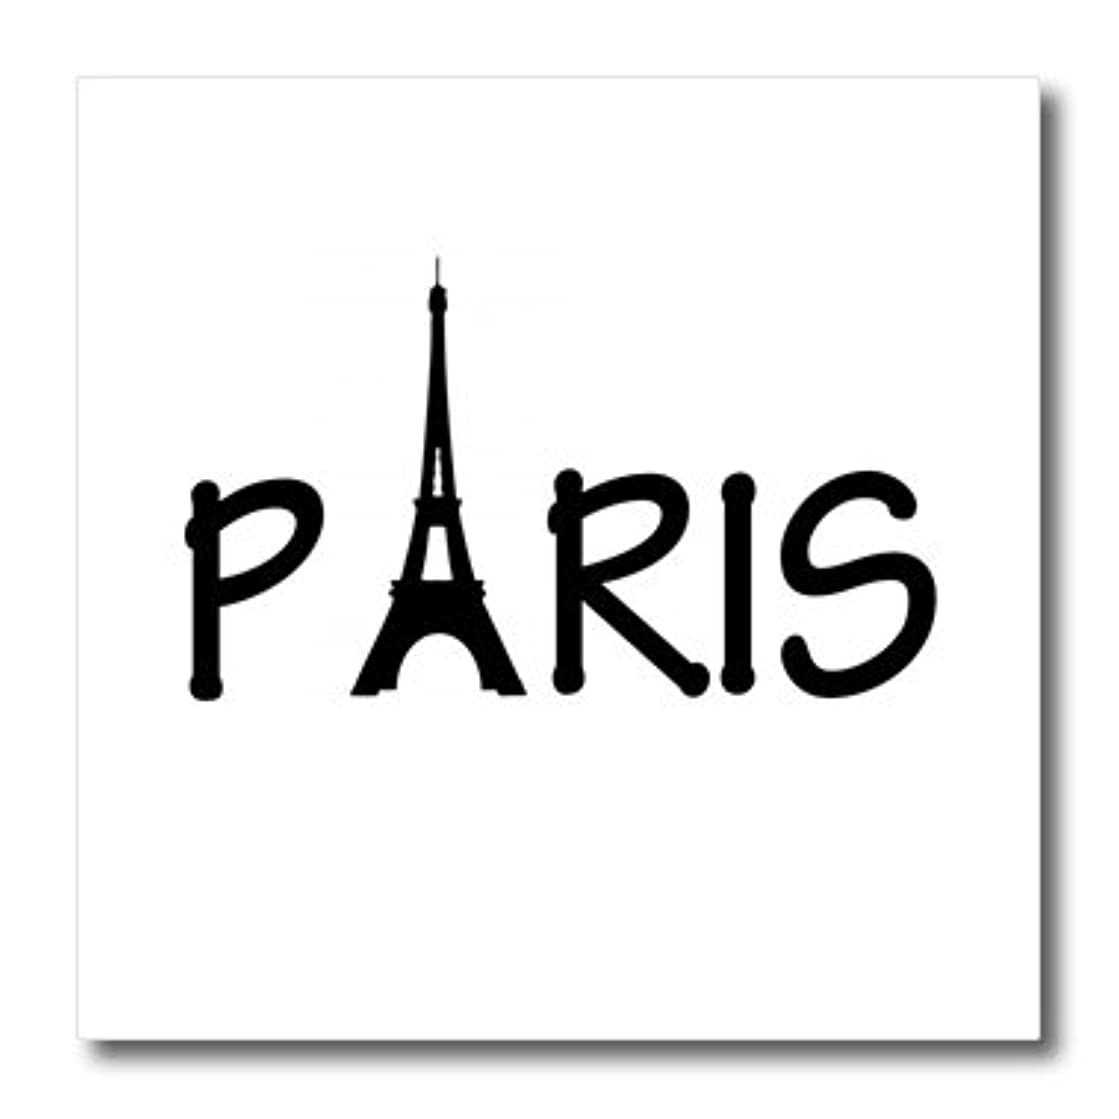 3dRose ht_157435_2 Paris Eiffel Tower Iron on Heat Transfer Paper for White Material, 6 by 6-Inch